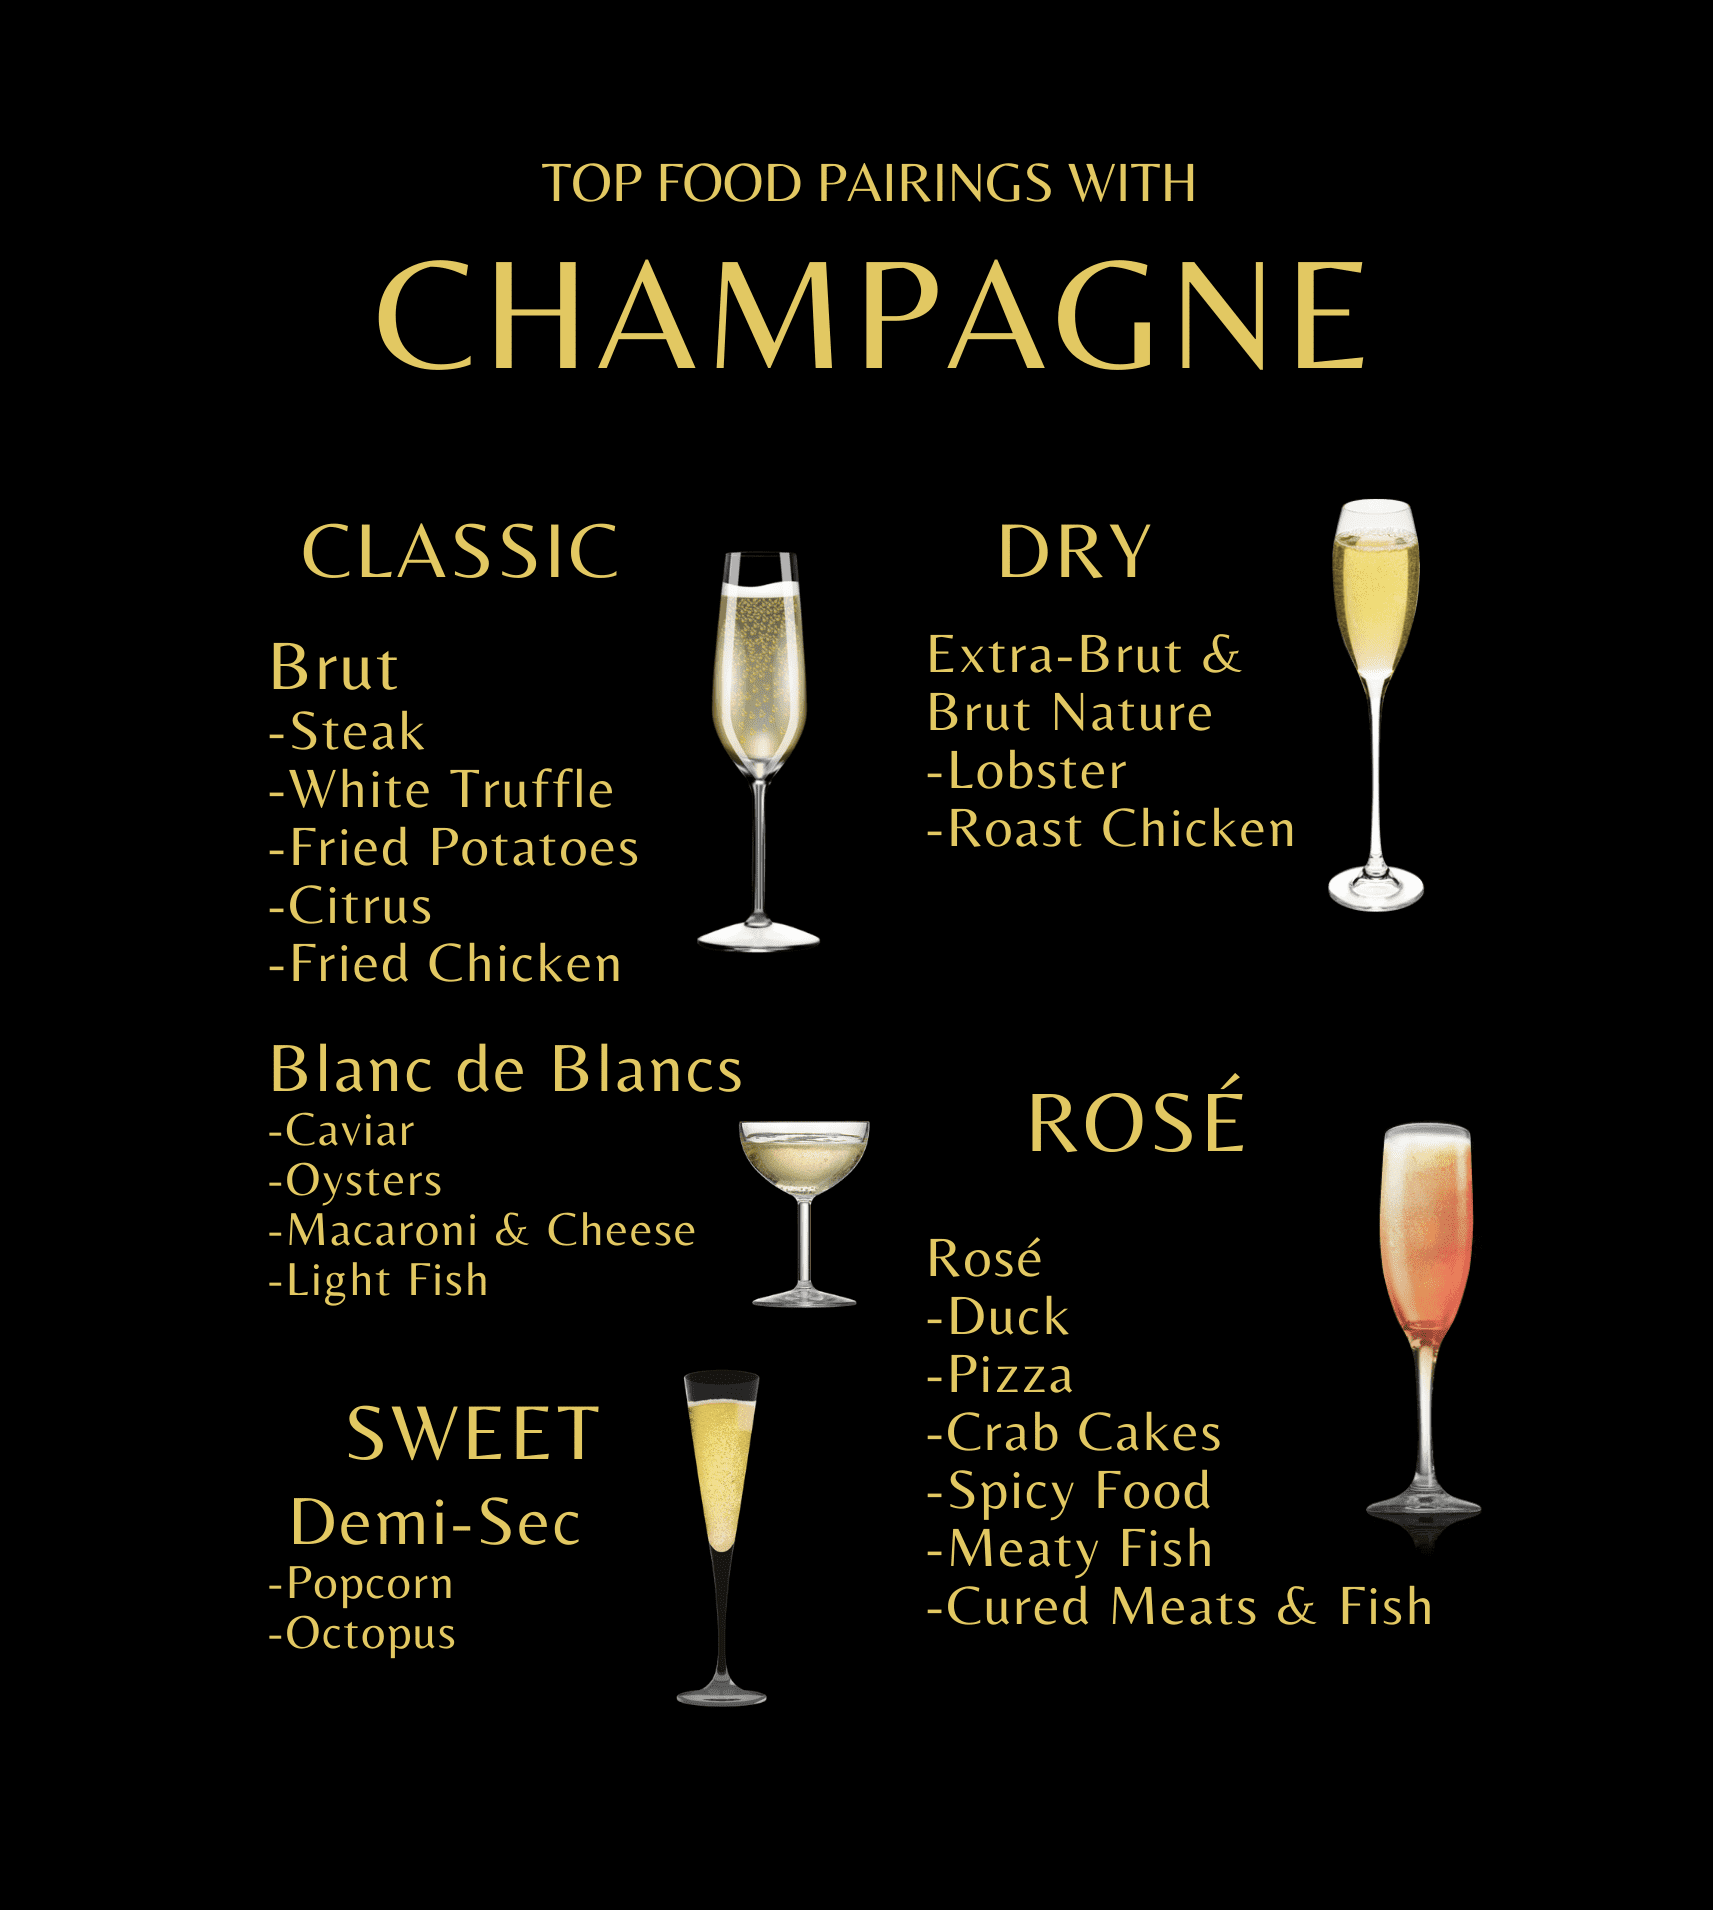 Champagne Food Pairing Guide